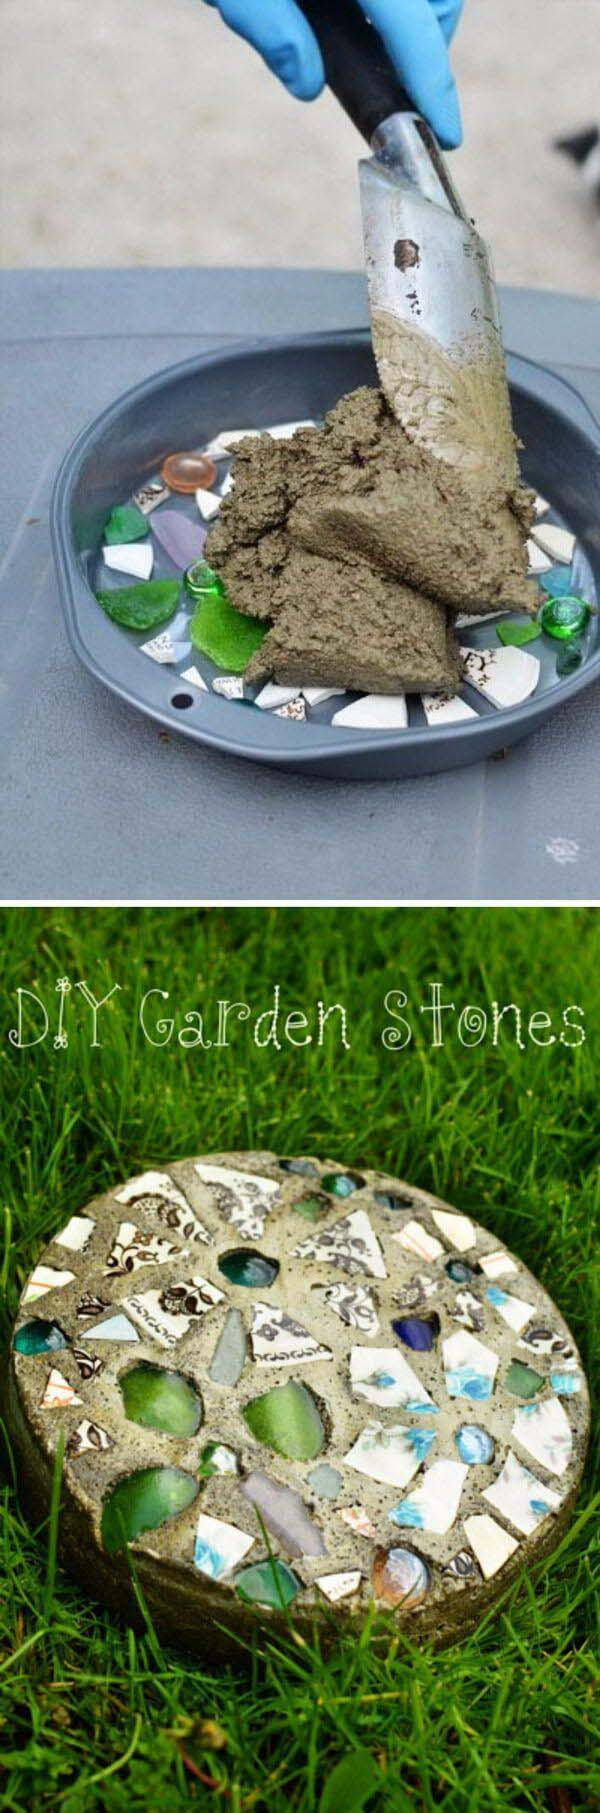 How to Make Stepping Stones – with a Cake Pan #diy #concrete #backyard #decorhomeideas